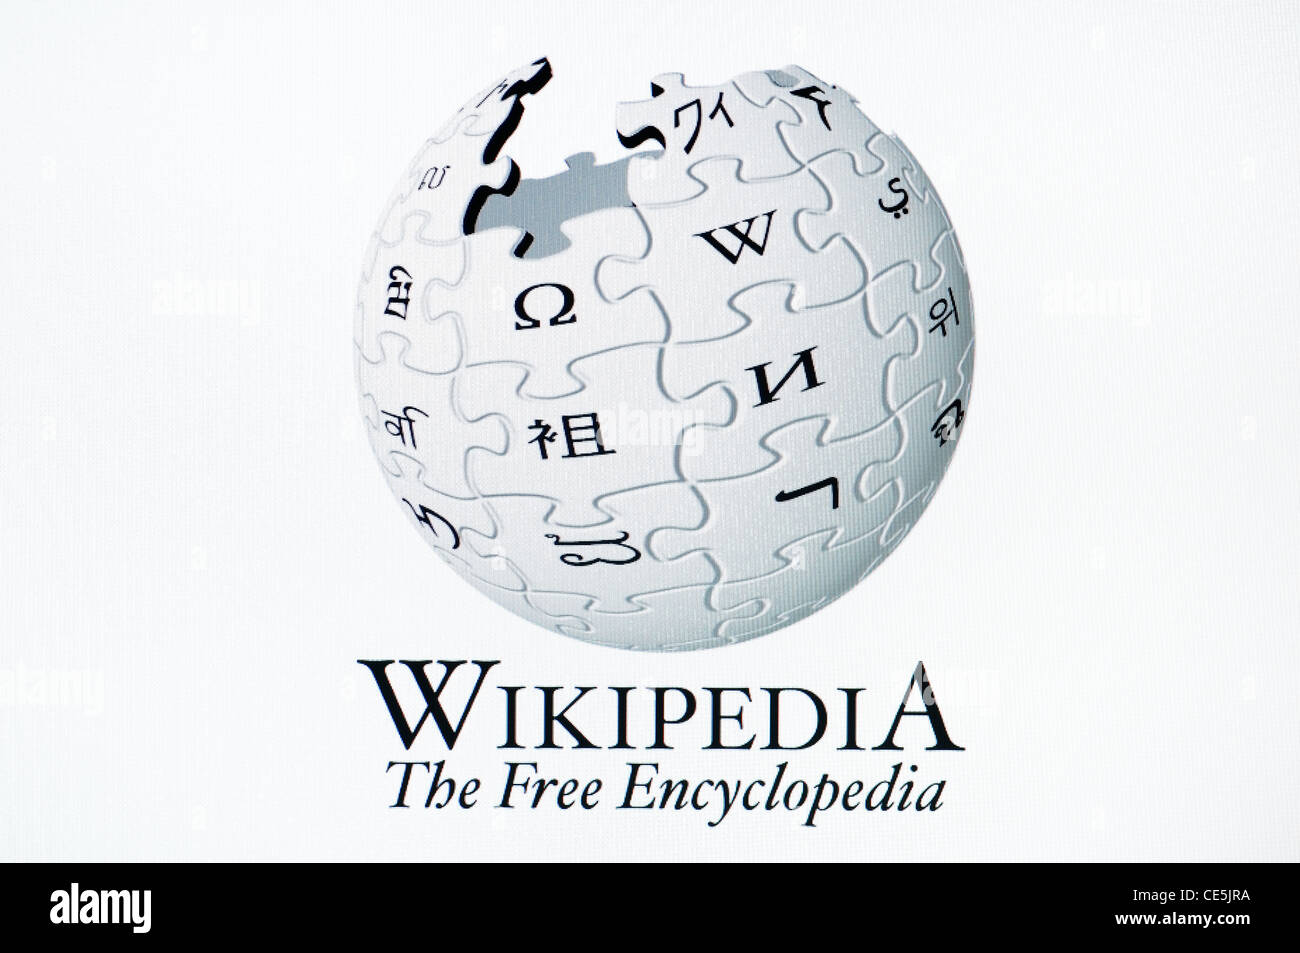 Wikipedia The Online Encyclopedia Screenshot Stock Photo Royalty - Wikipedia royalty free images